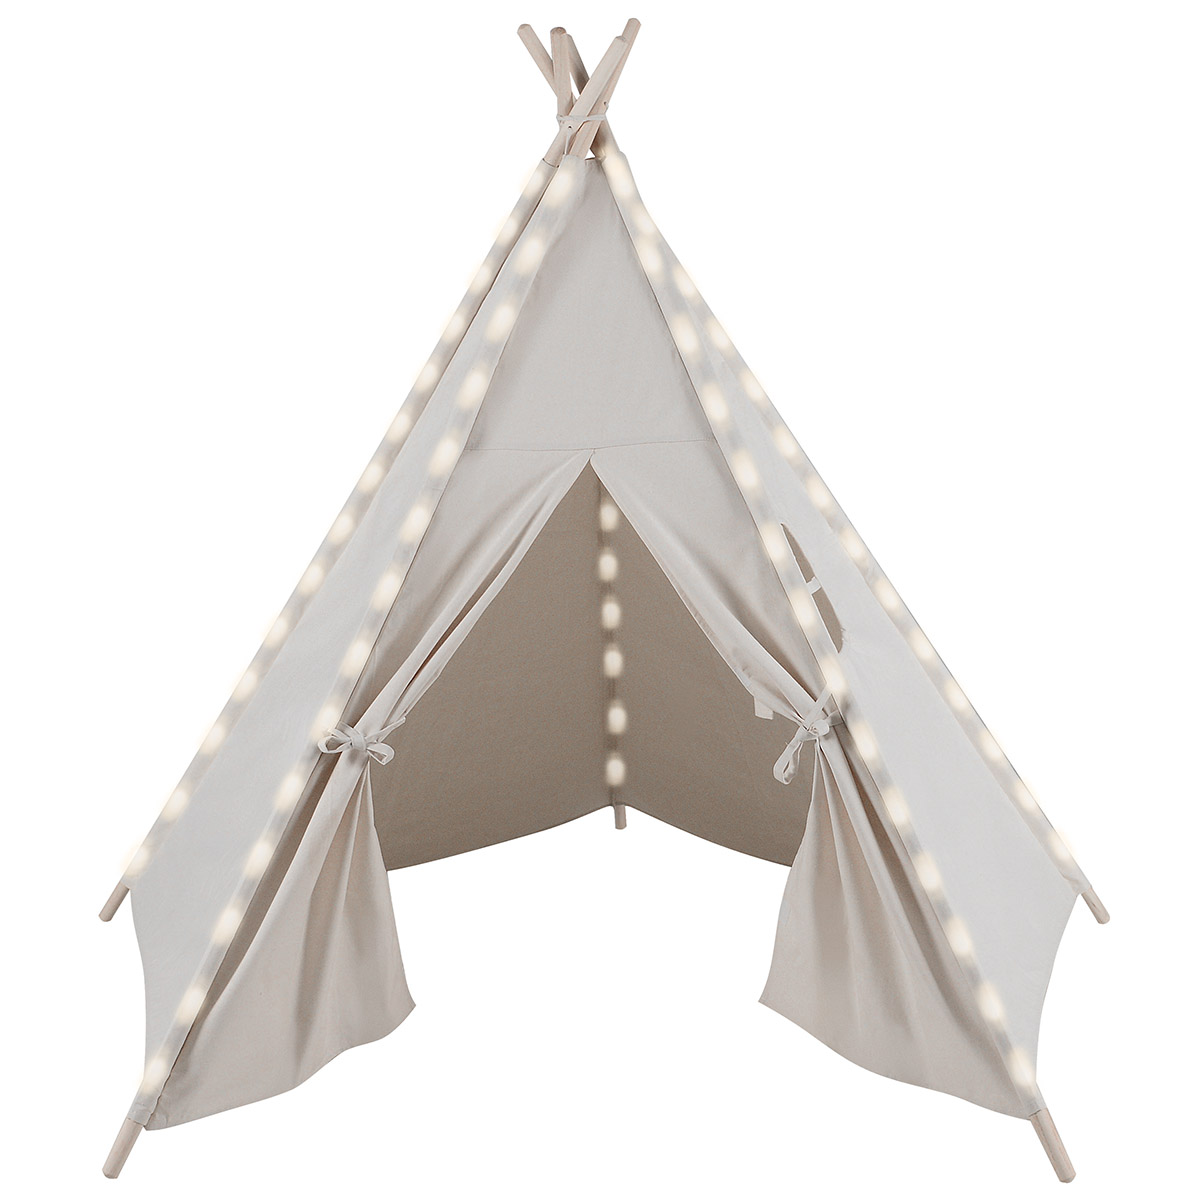 Clevr 6' Kids White Teepee Play Tent House, Ready-to-Paint Canvas, Cool White LED Lights by Clevr